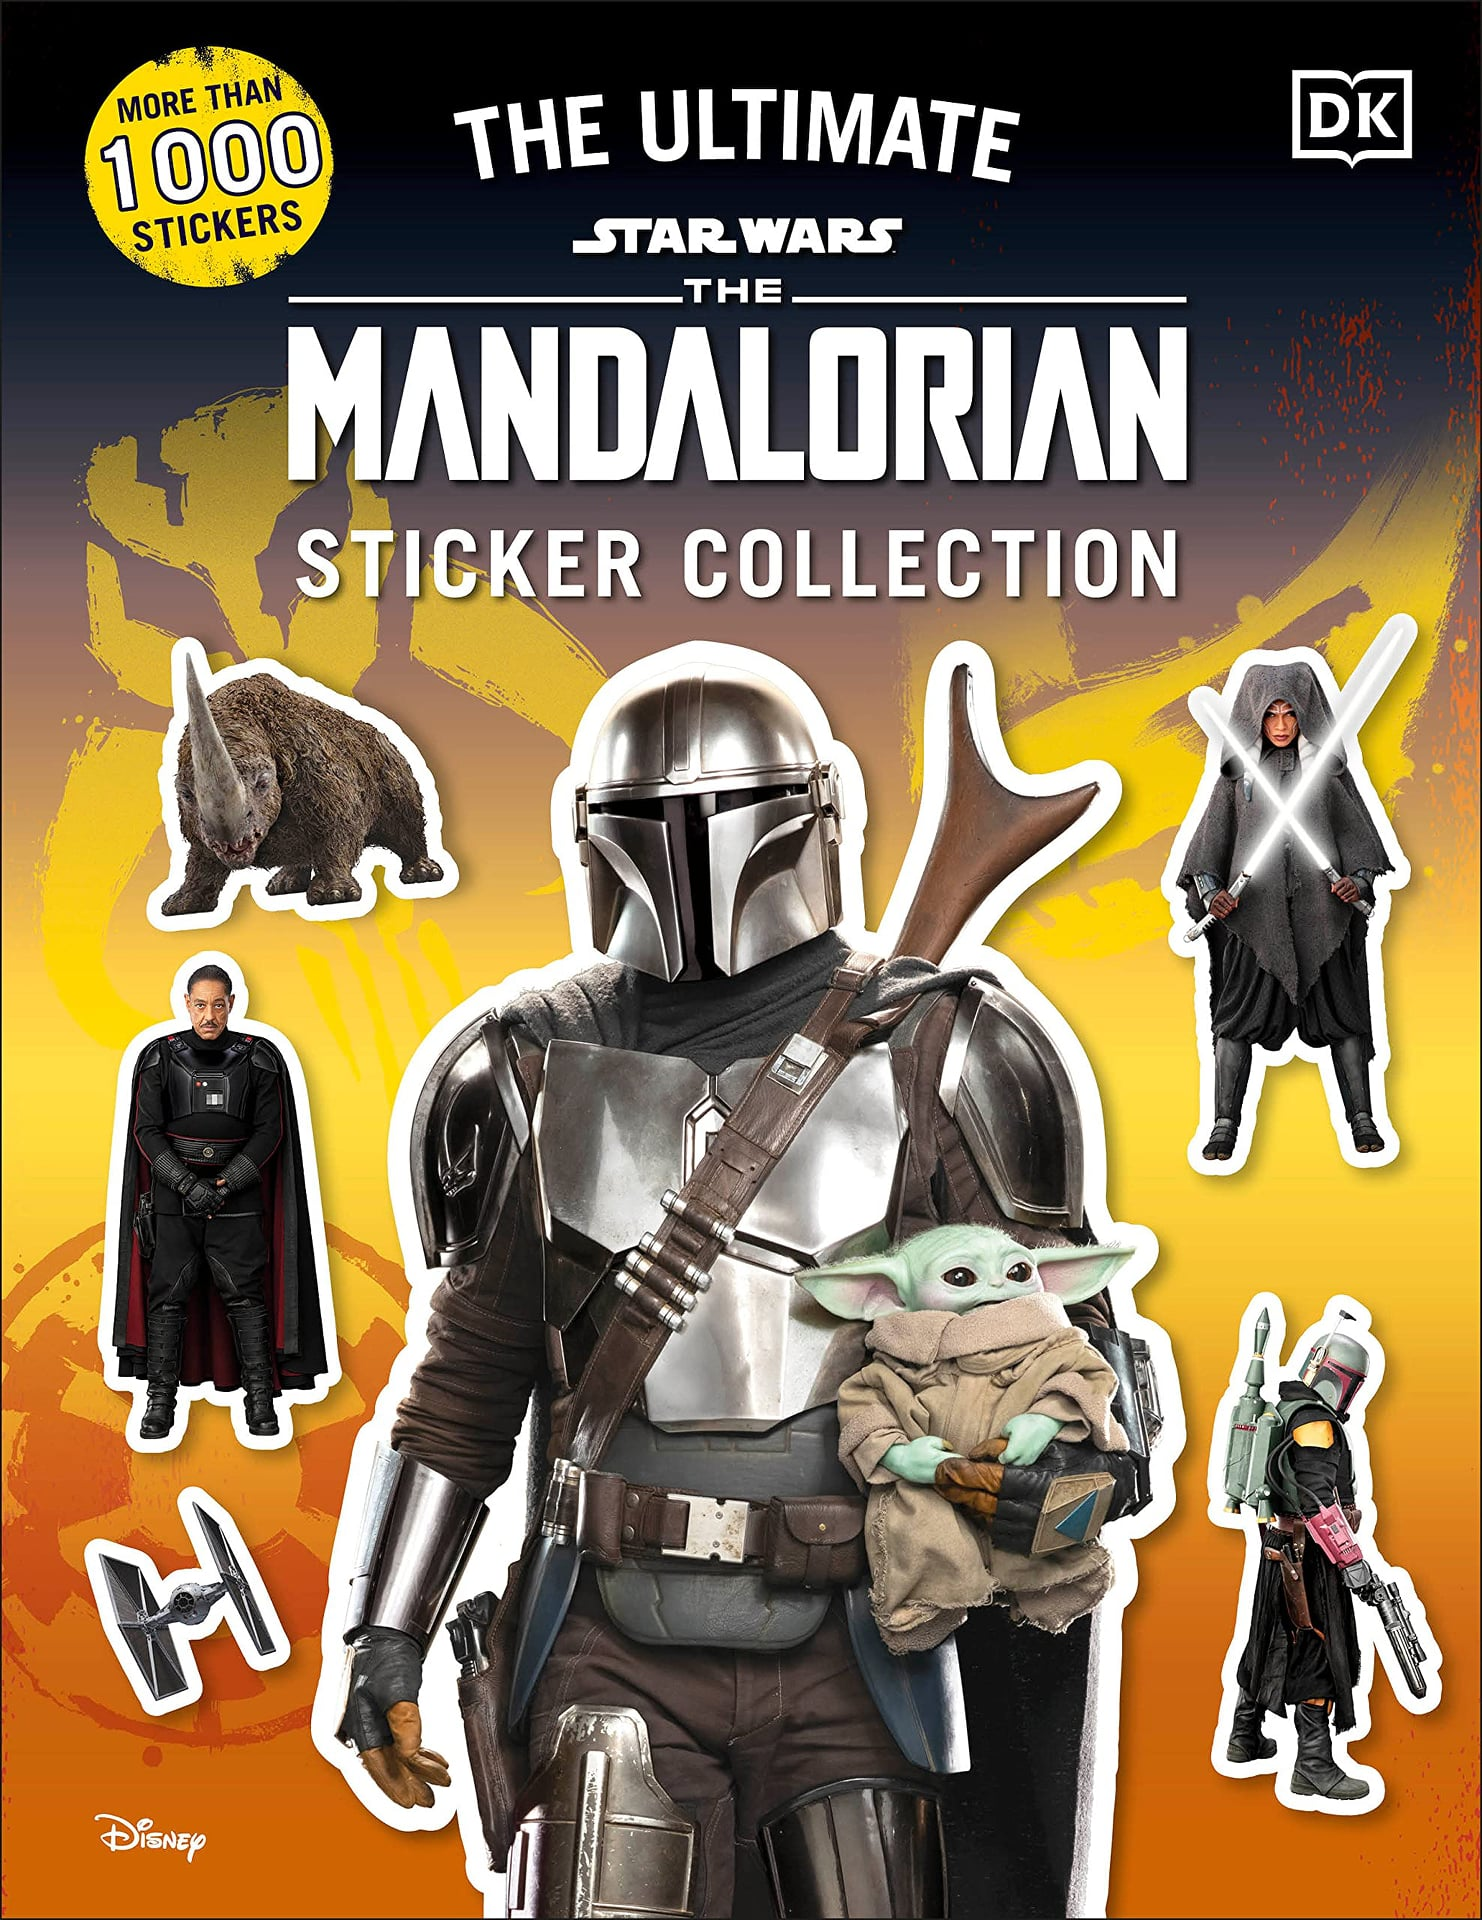 The Ultimate Star Wars: The Mandalorian Sticker Collection